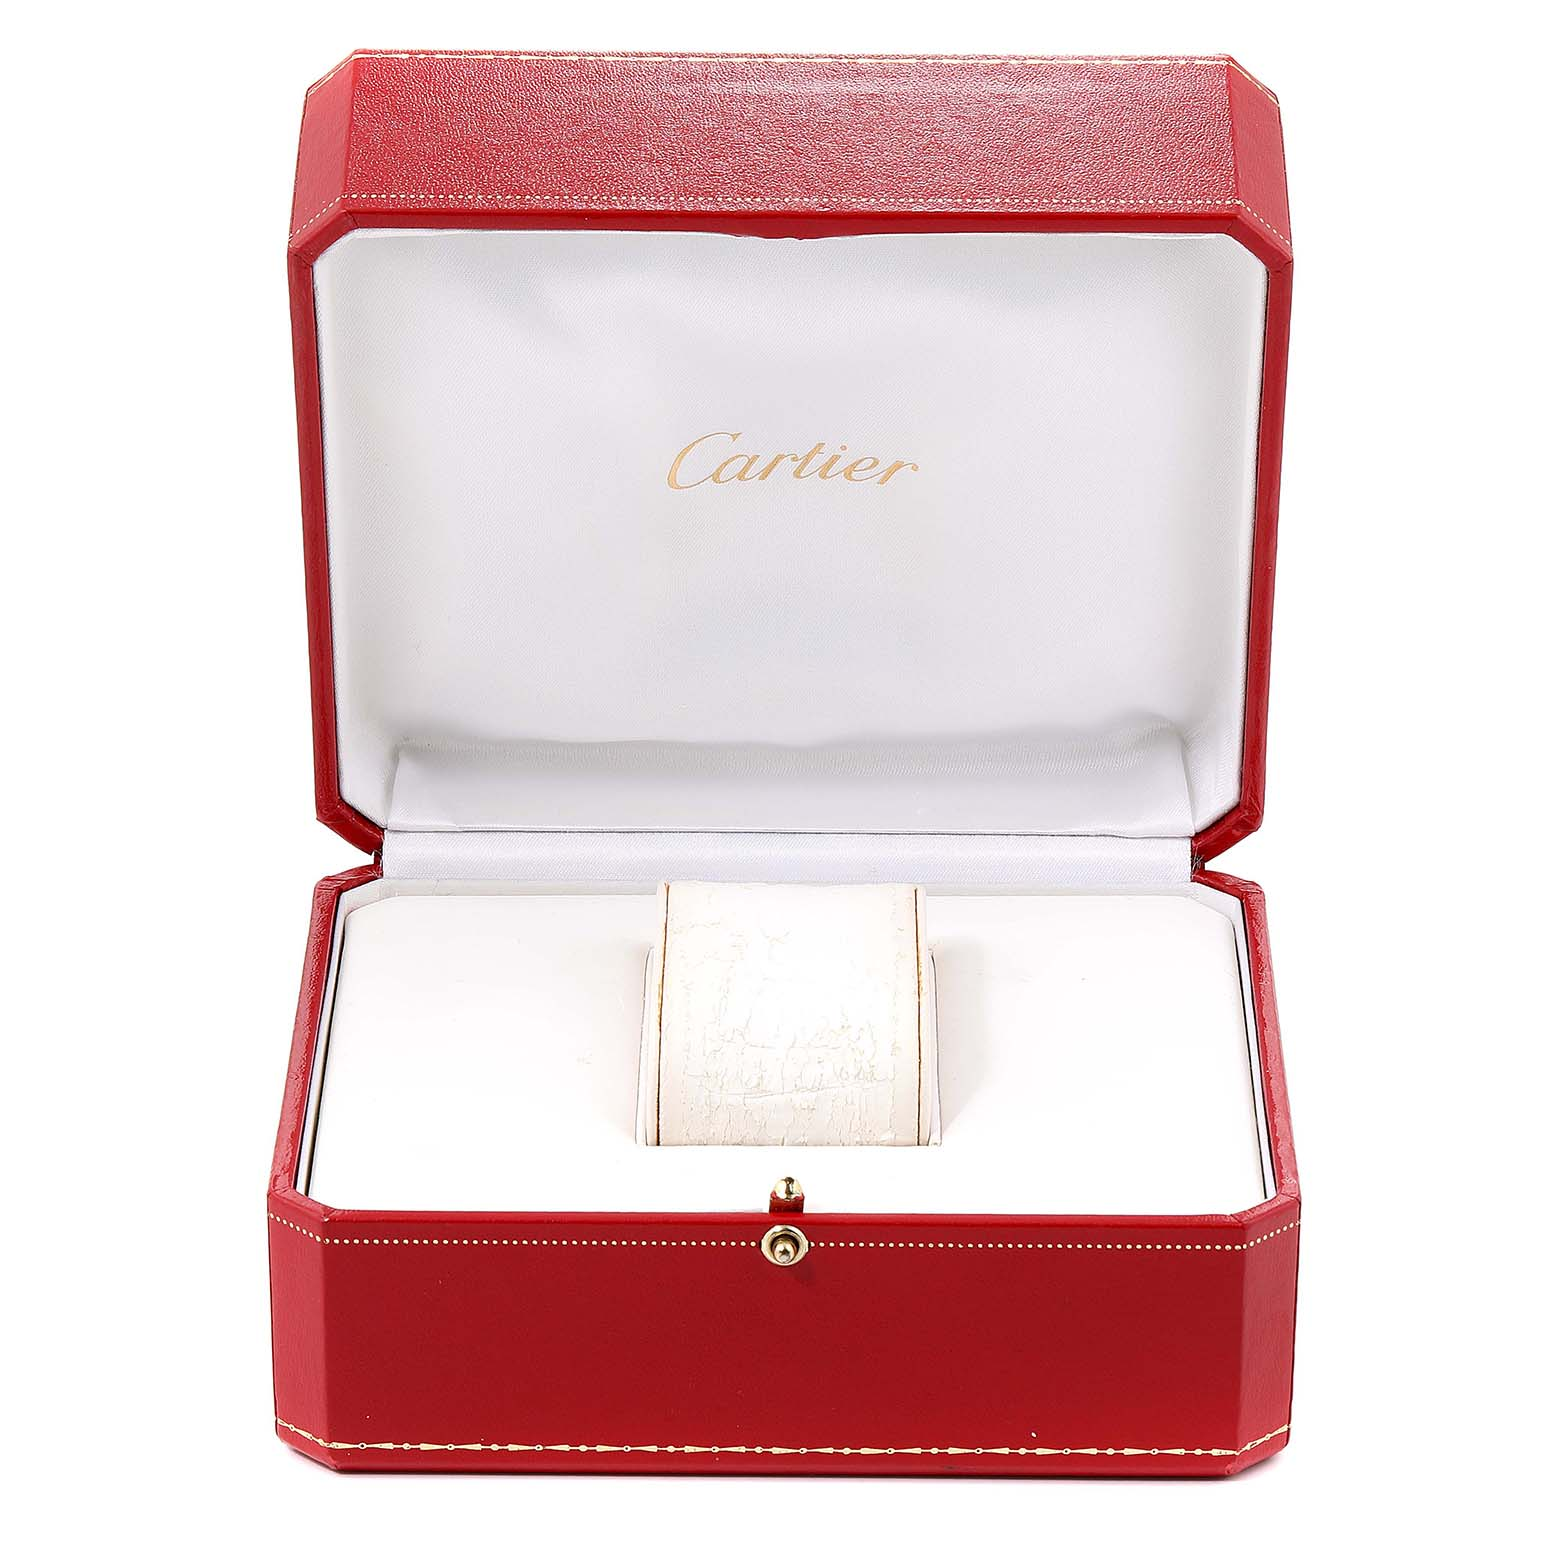 Cartier Cougar 18K Yellow Gold Silver Dial Ladies Watch 8057921 SwissWatchExpo